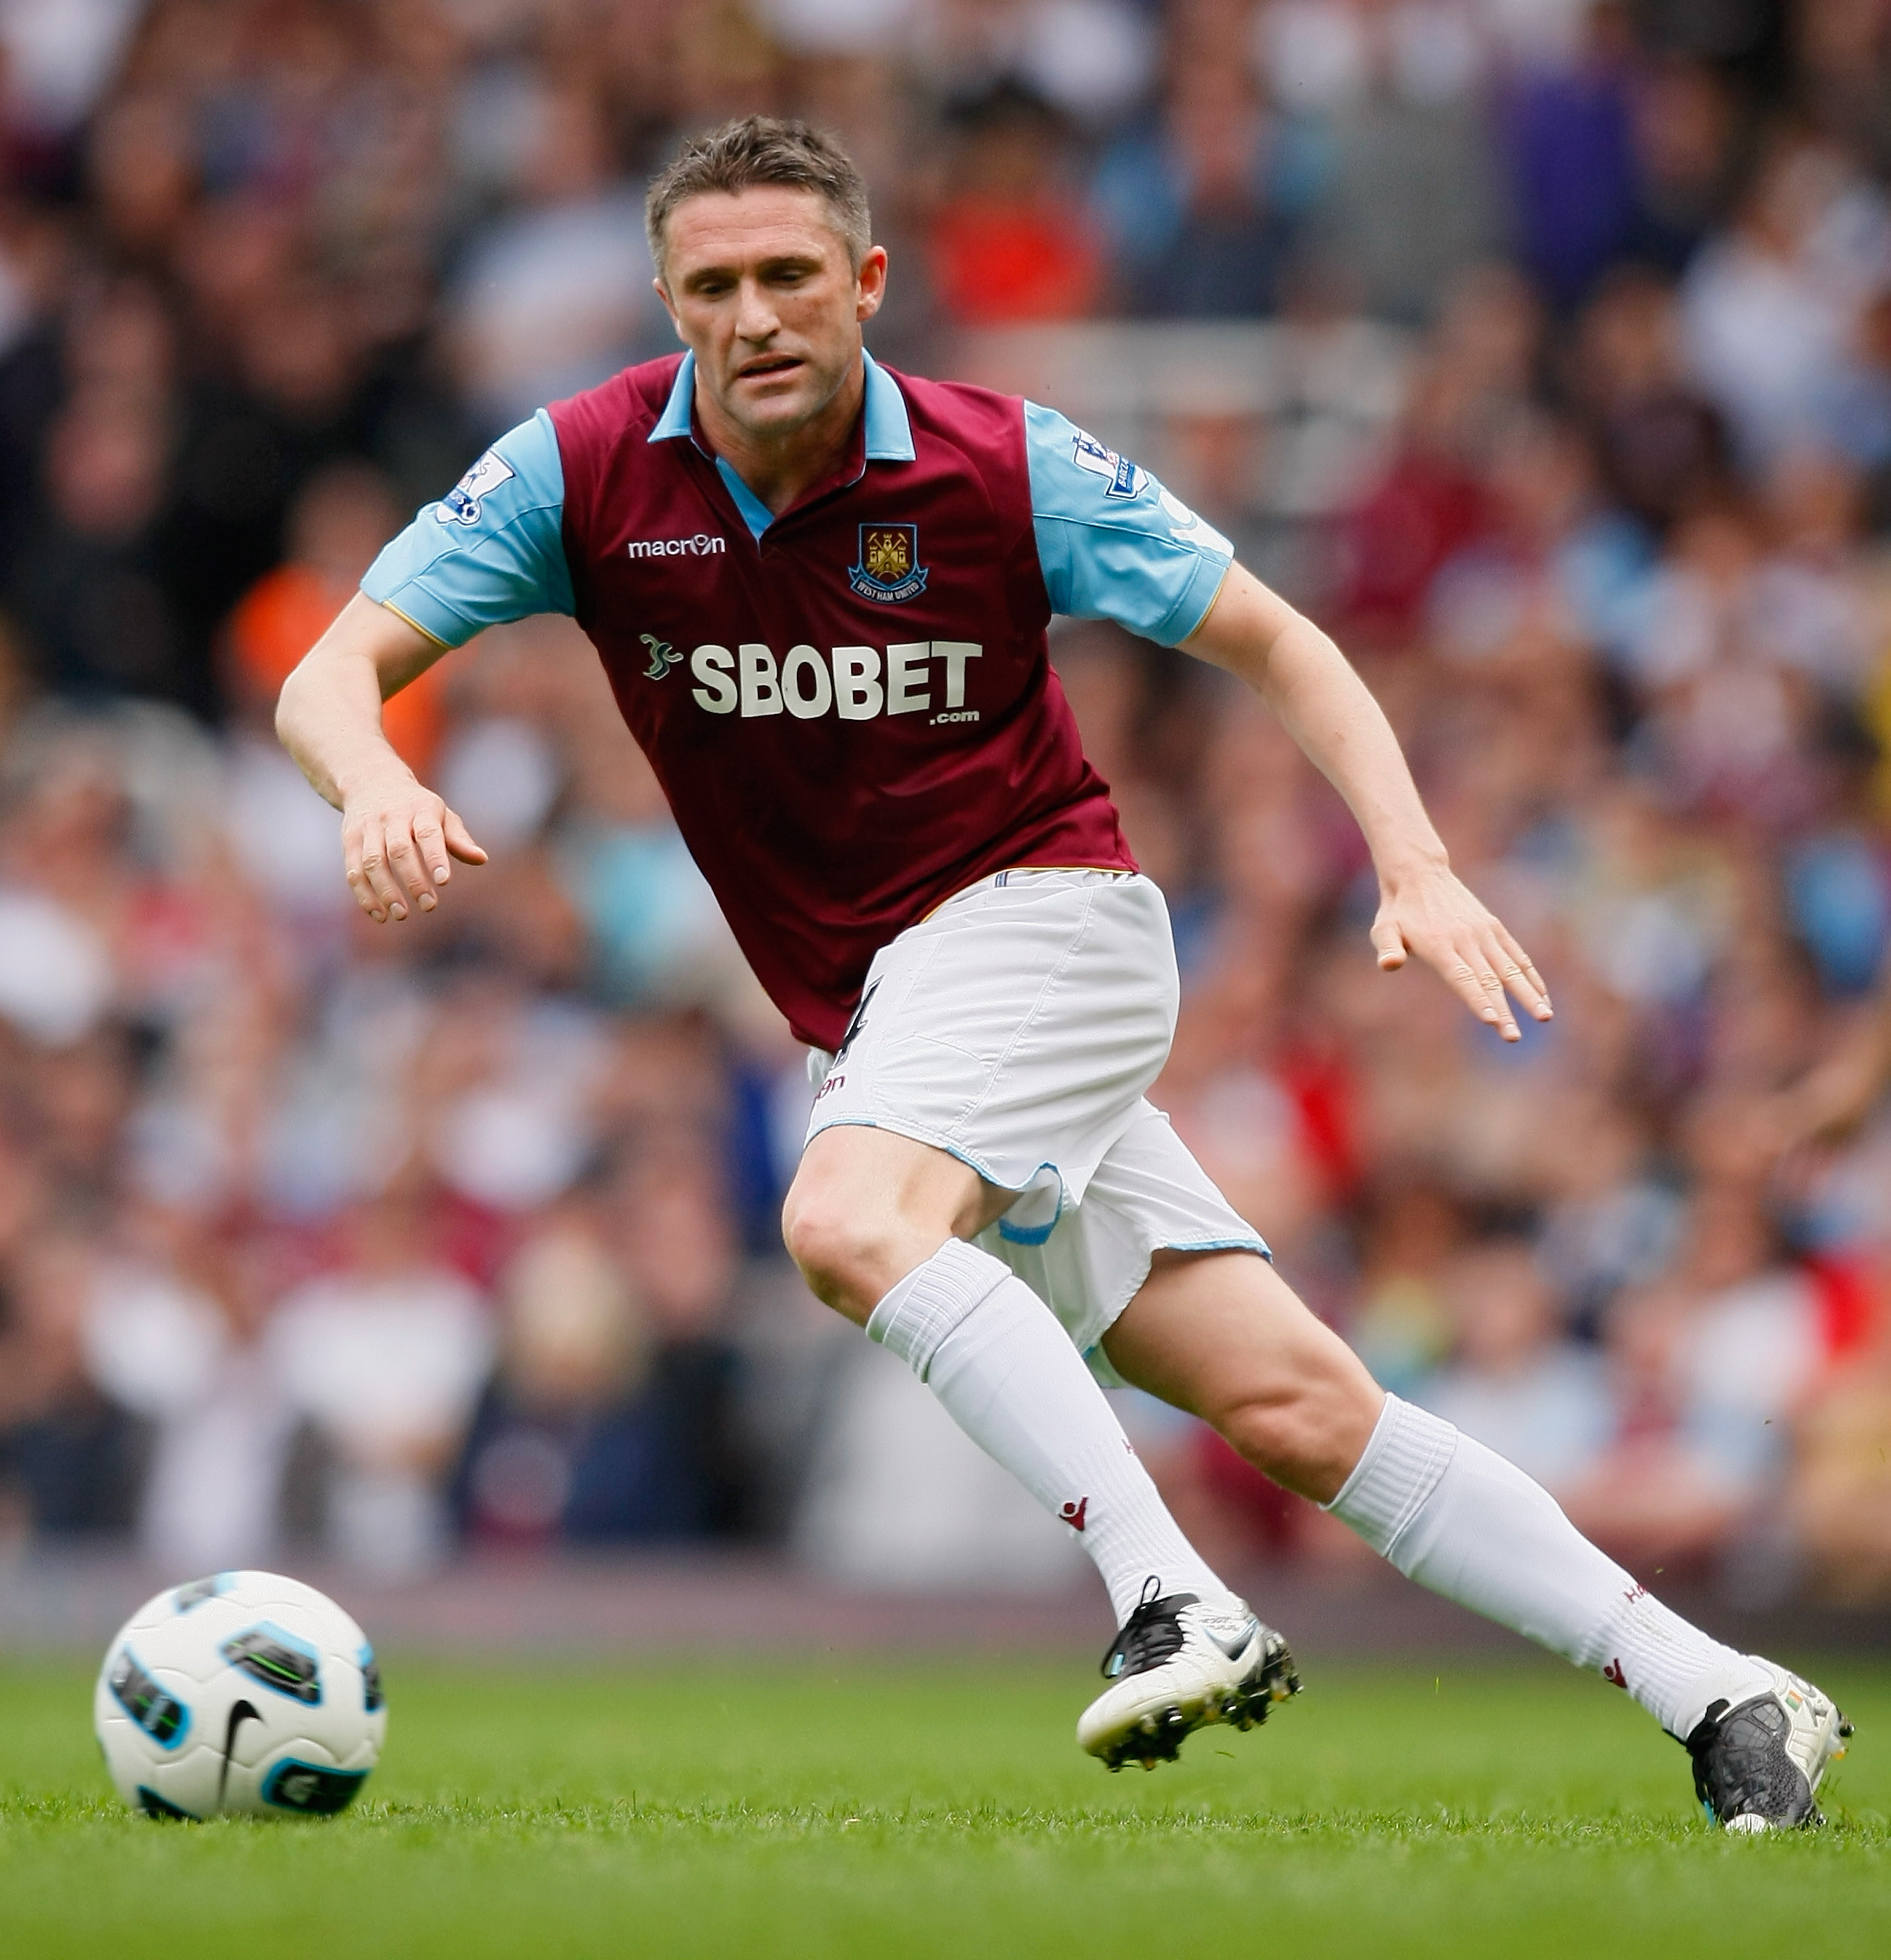 LONDON, ENGLAND - APRIL 16:  Robbie Keane of West Ham United runs with the ball during the Barclays Premier League match between West Ham United and Aston Villa at the Boleyn Ground on April 16, 2011 in London, England.  (Photo by Tom Dulat/Getty Images)